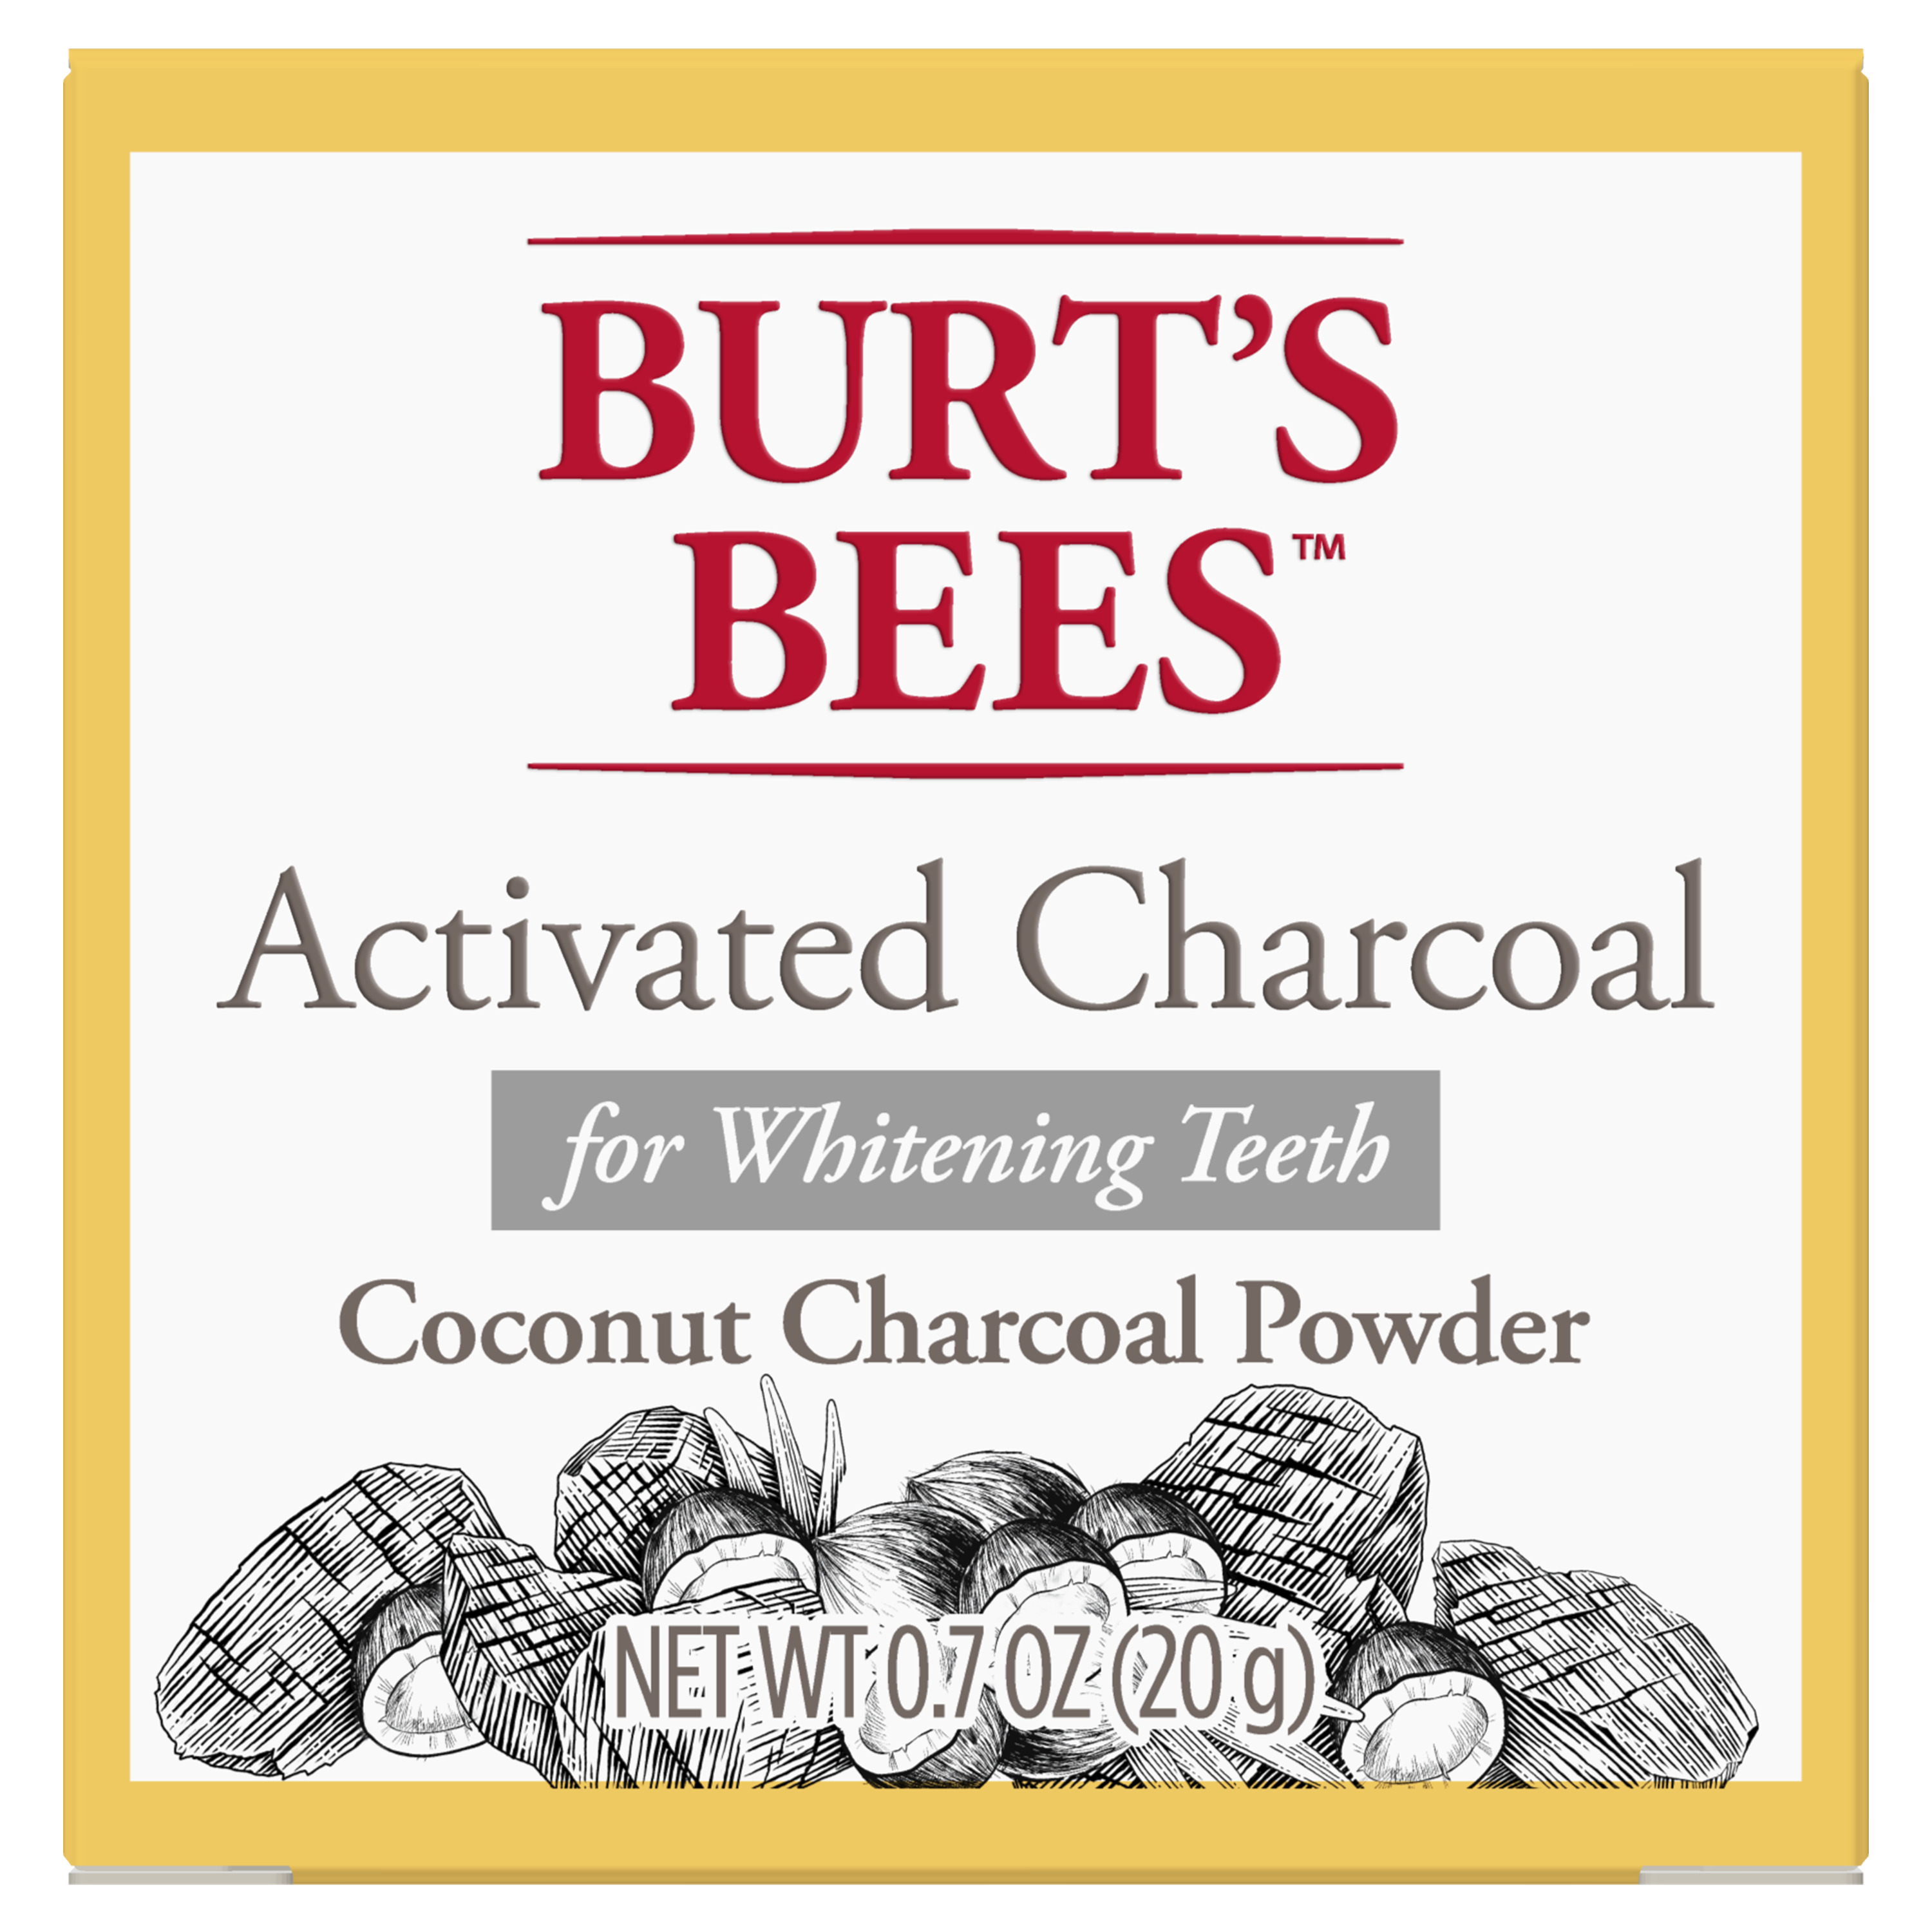 Burt's Bees Activated Coconut Charcoal Powder for Teeth Whitening, 20g